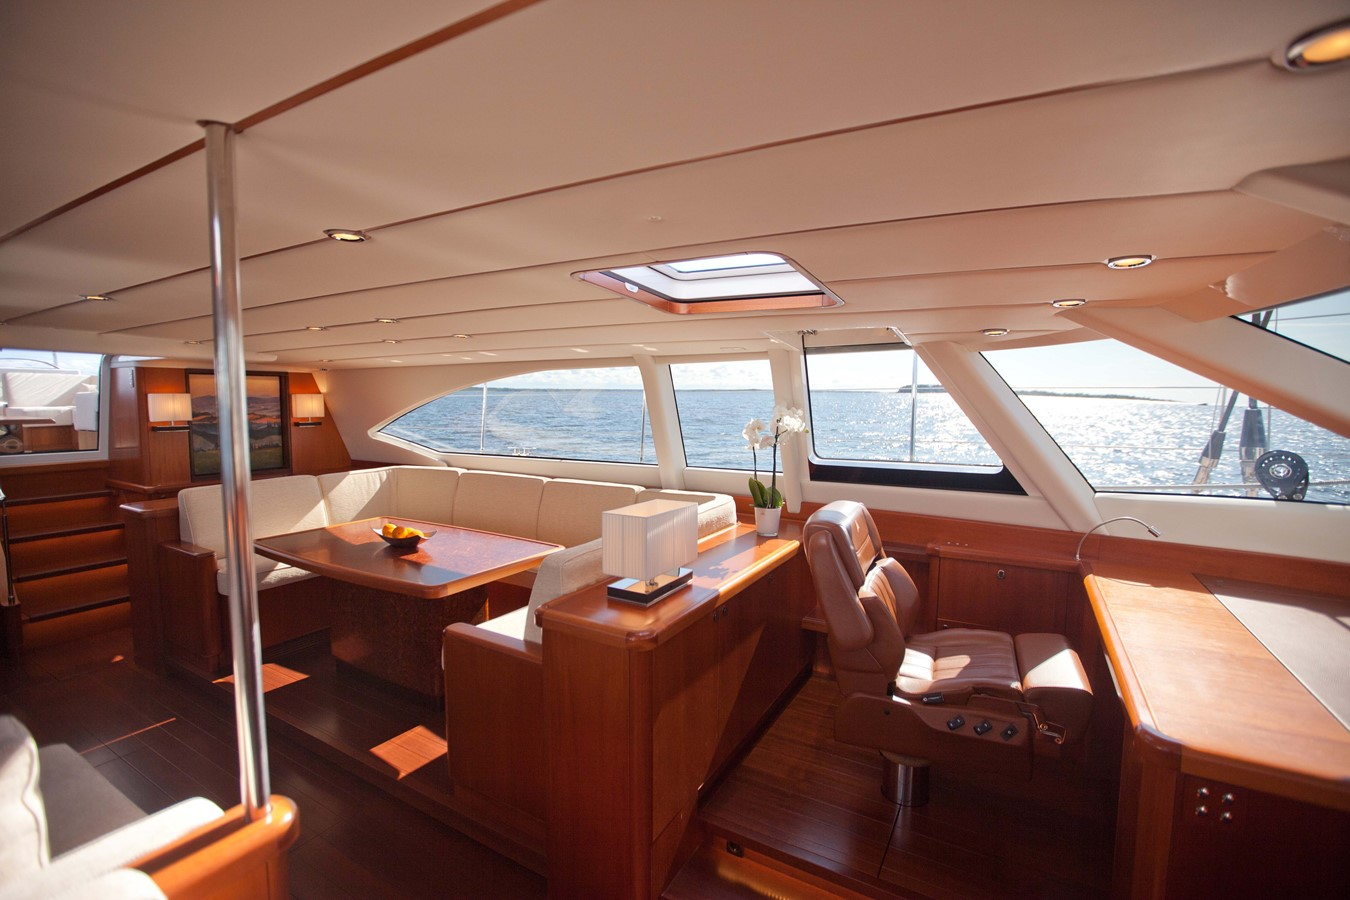 2014 NAUTOR'S SWAN  Performance Sailboat 1768977